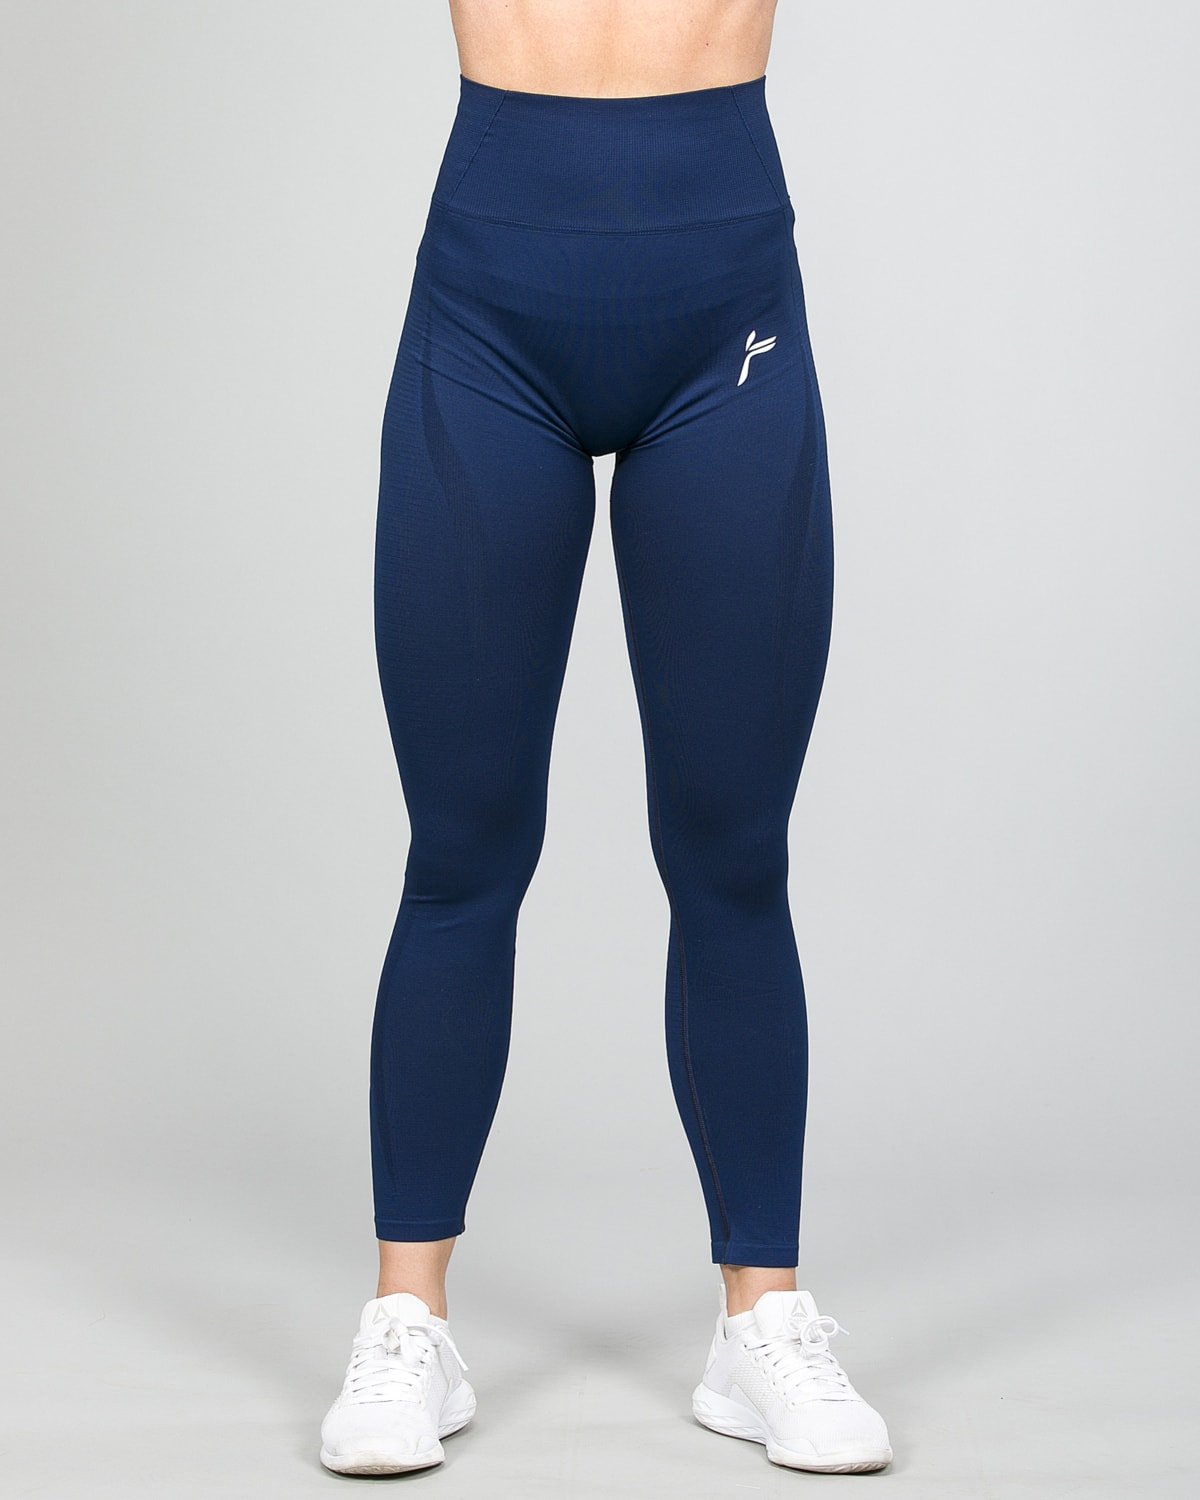 Famme Vortex Legging – Navy Blue vhwl-nv d